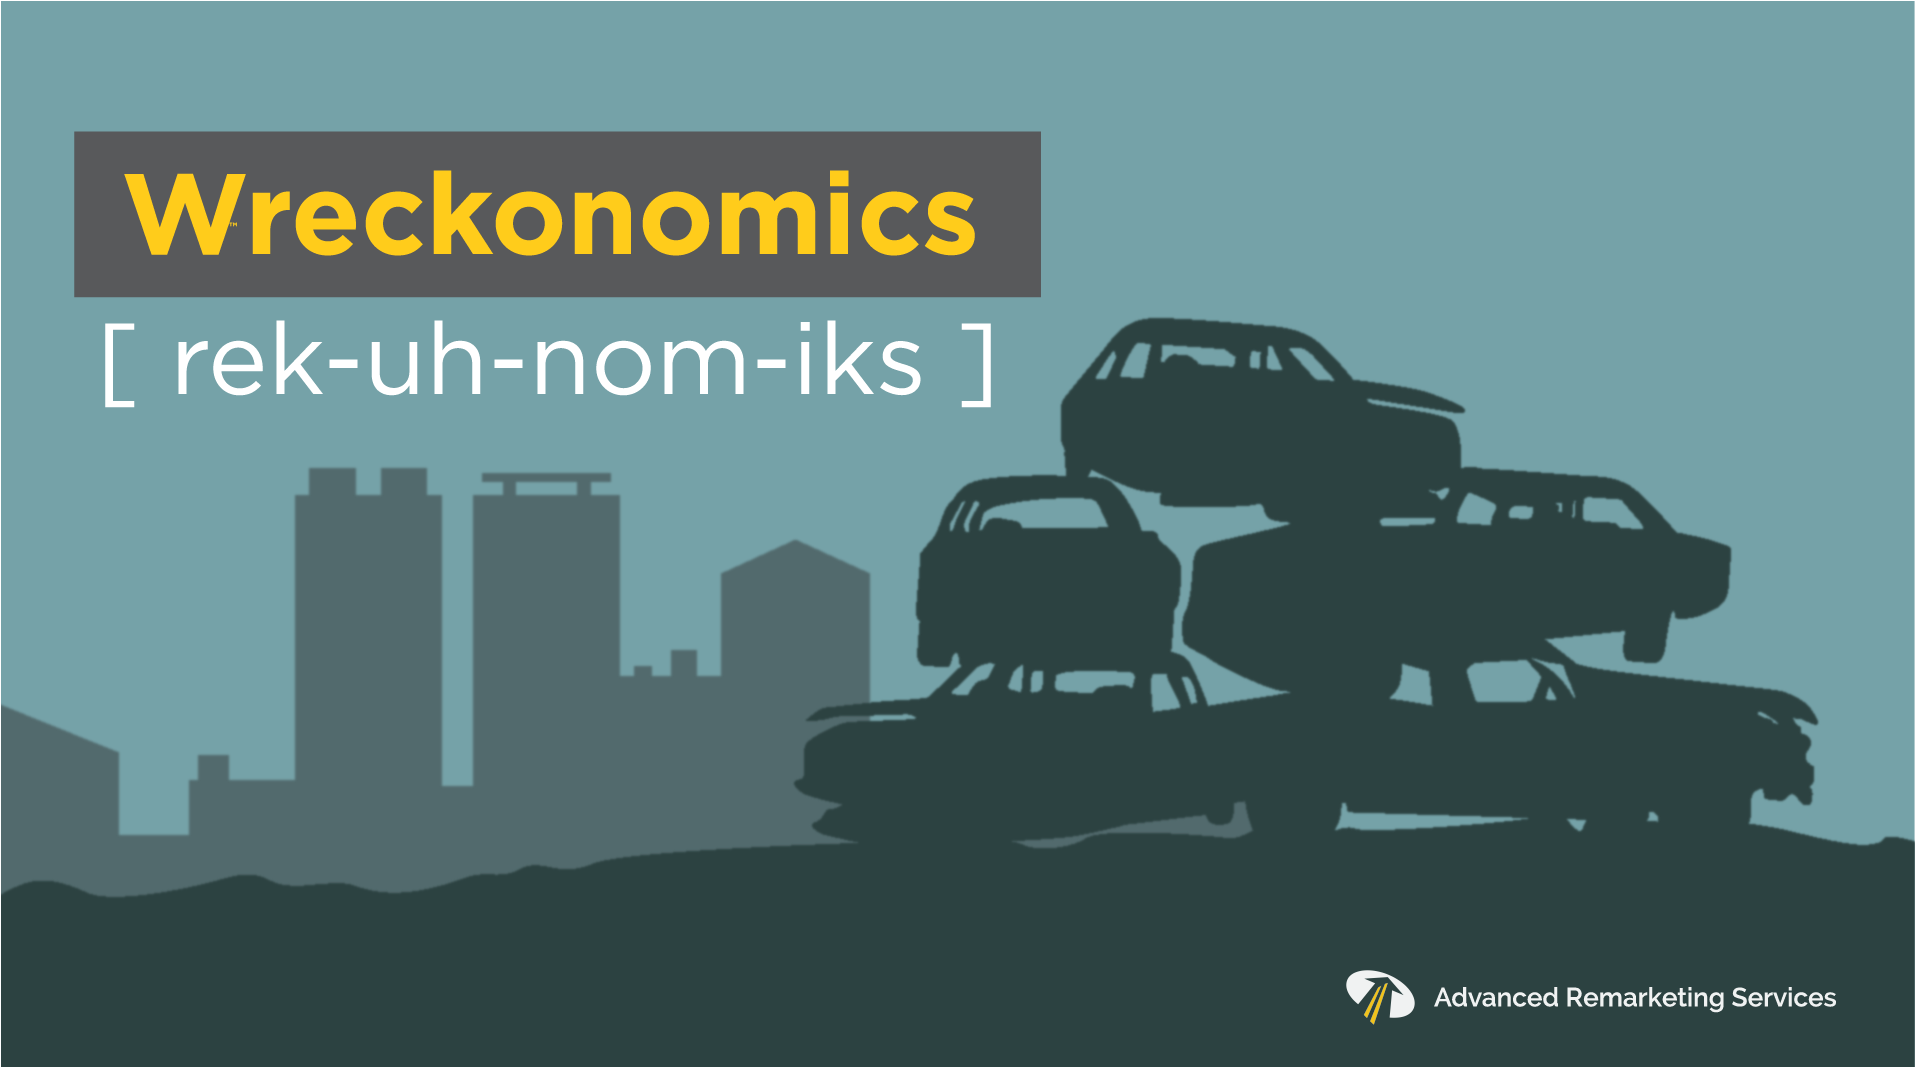 Wreckonomics ™ 1.1: Overall Vehicle Landscape & Junk Car Market